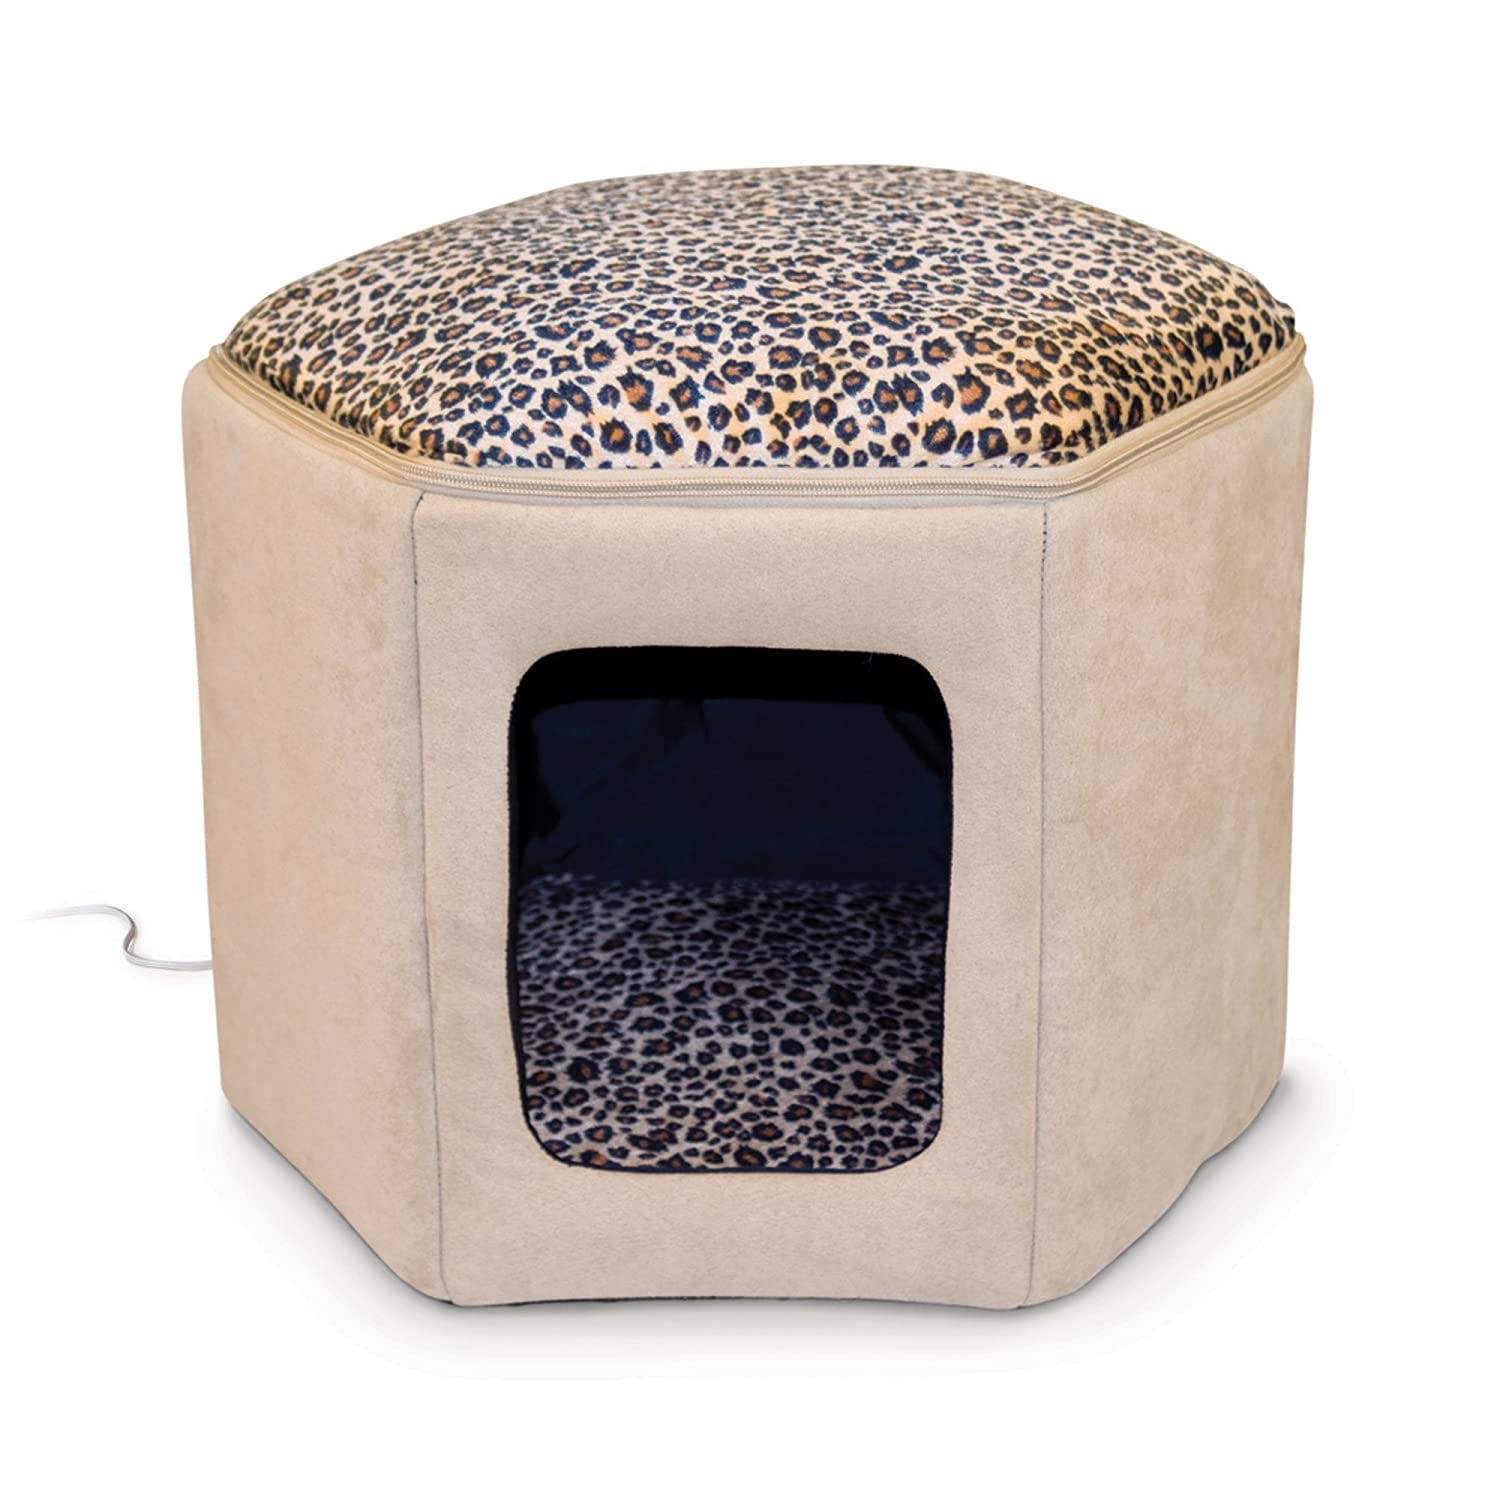 K H Manufacturing Kitty Sleephouse Tan/Leopard 4 Watt Heater